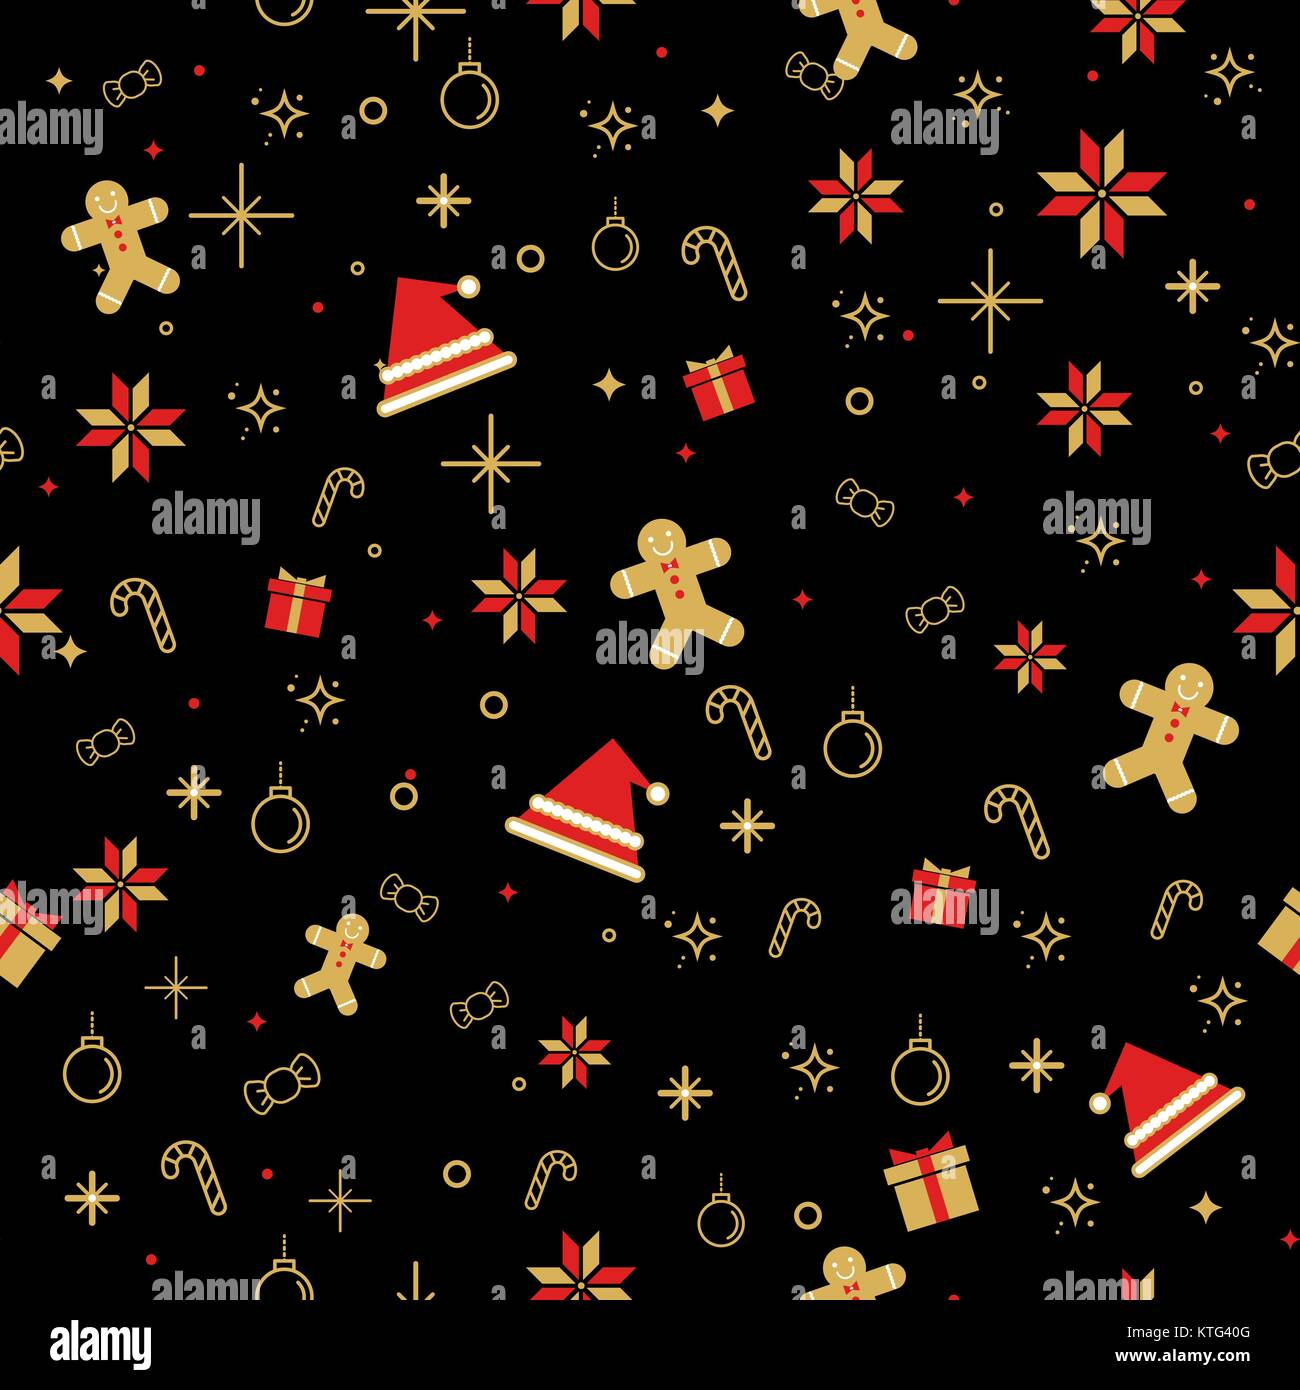 Seamless background image of Christmas decorating item pattern in black. - Stock Vector